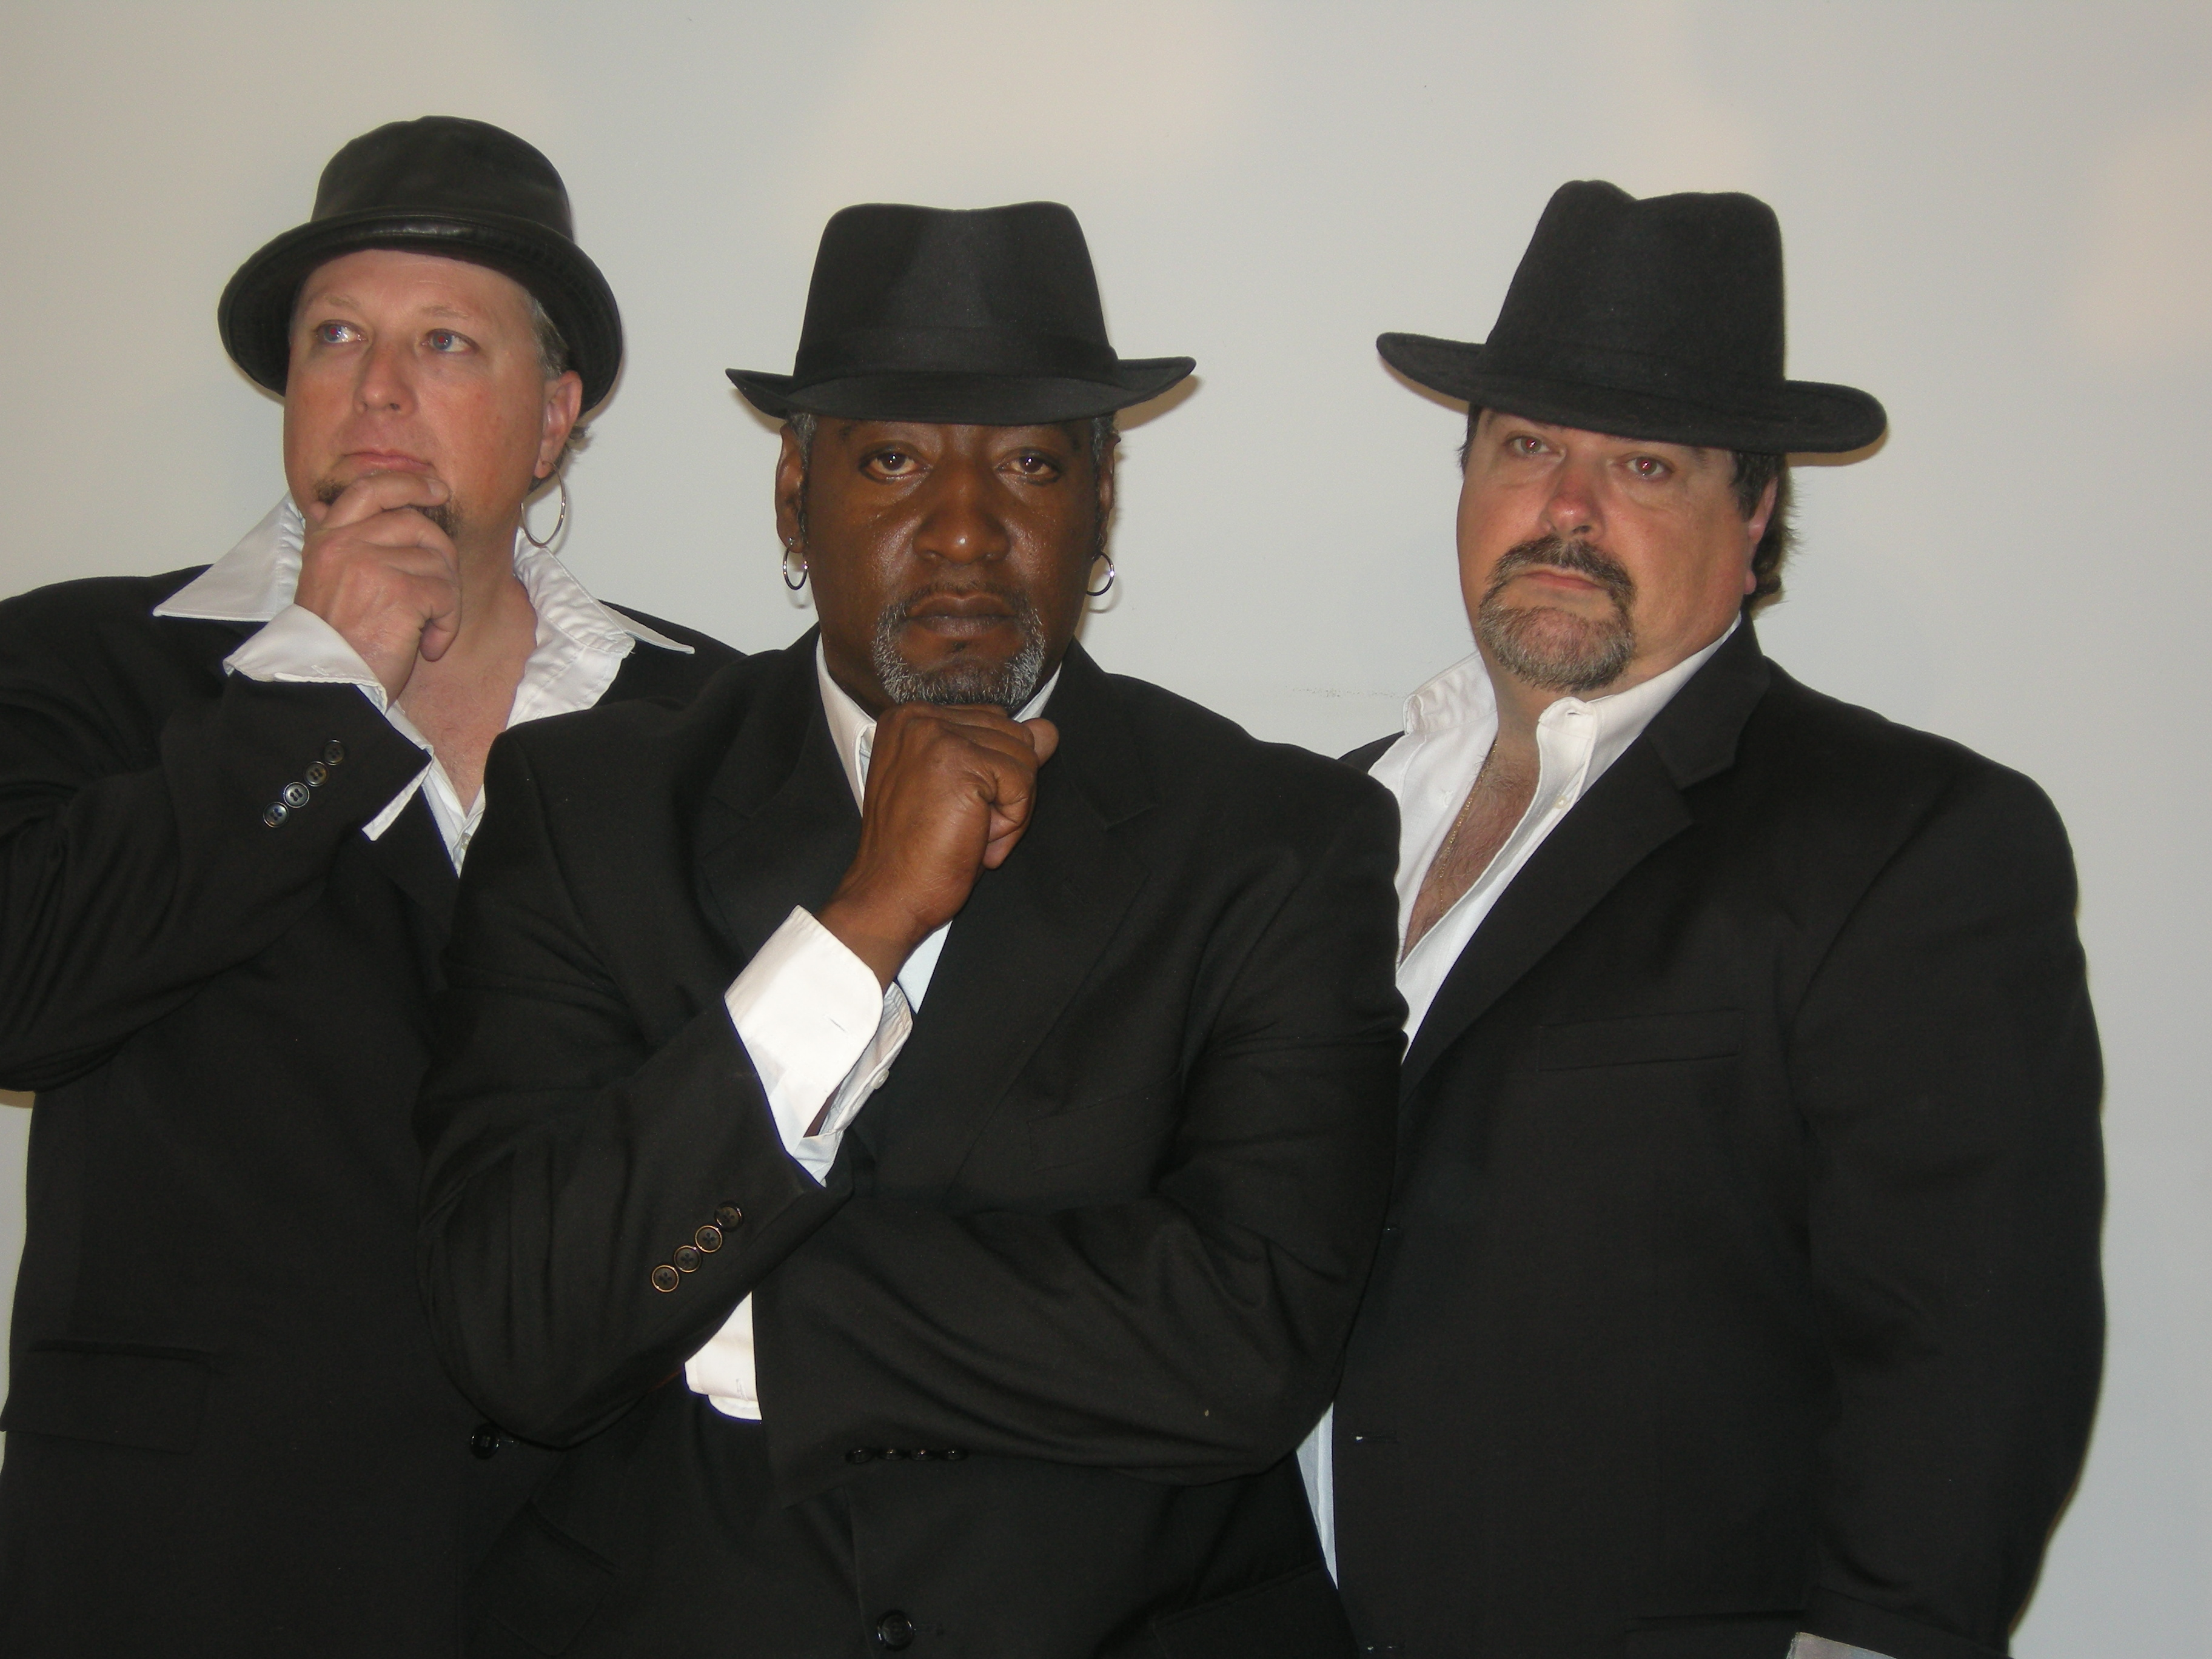 Members of the band Surrender Dorothy (left to right): Chris Spradling, Ray Williams, Steve Anderson